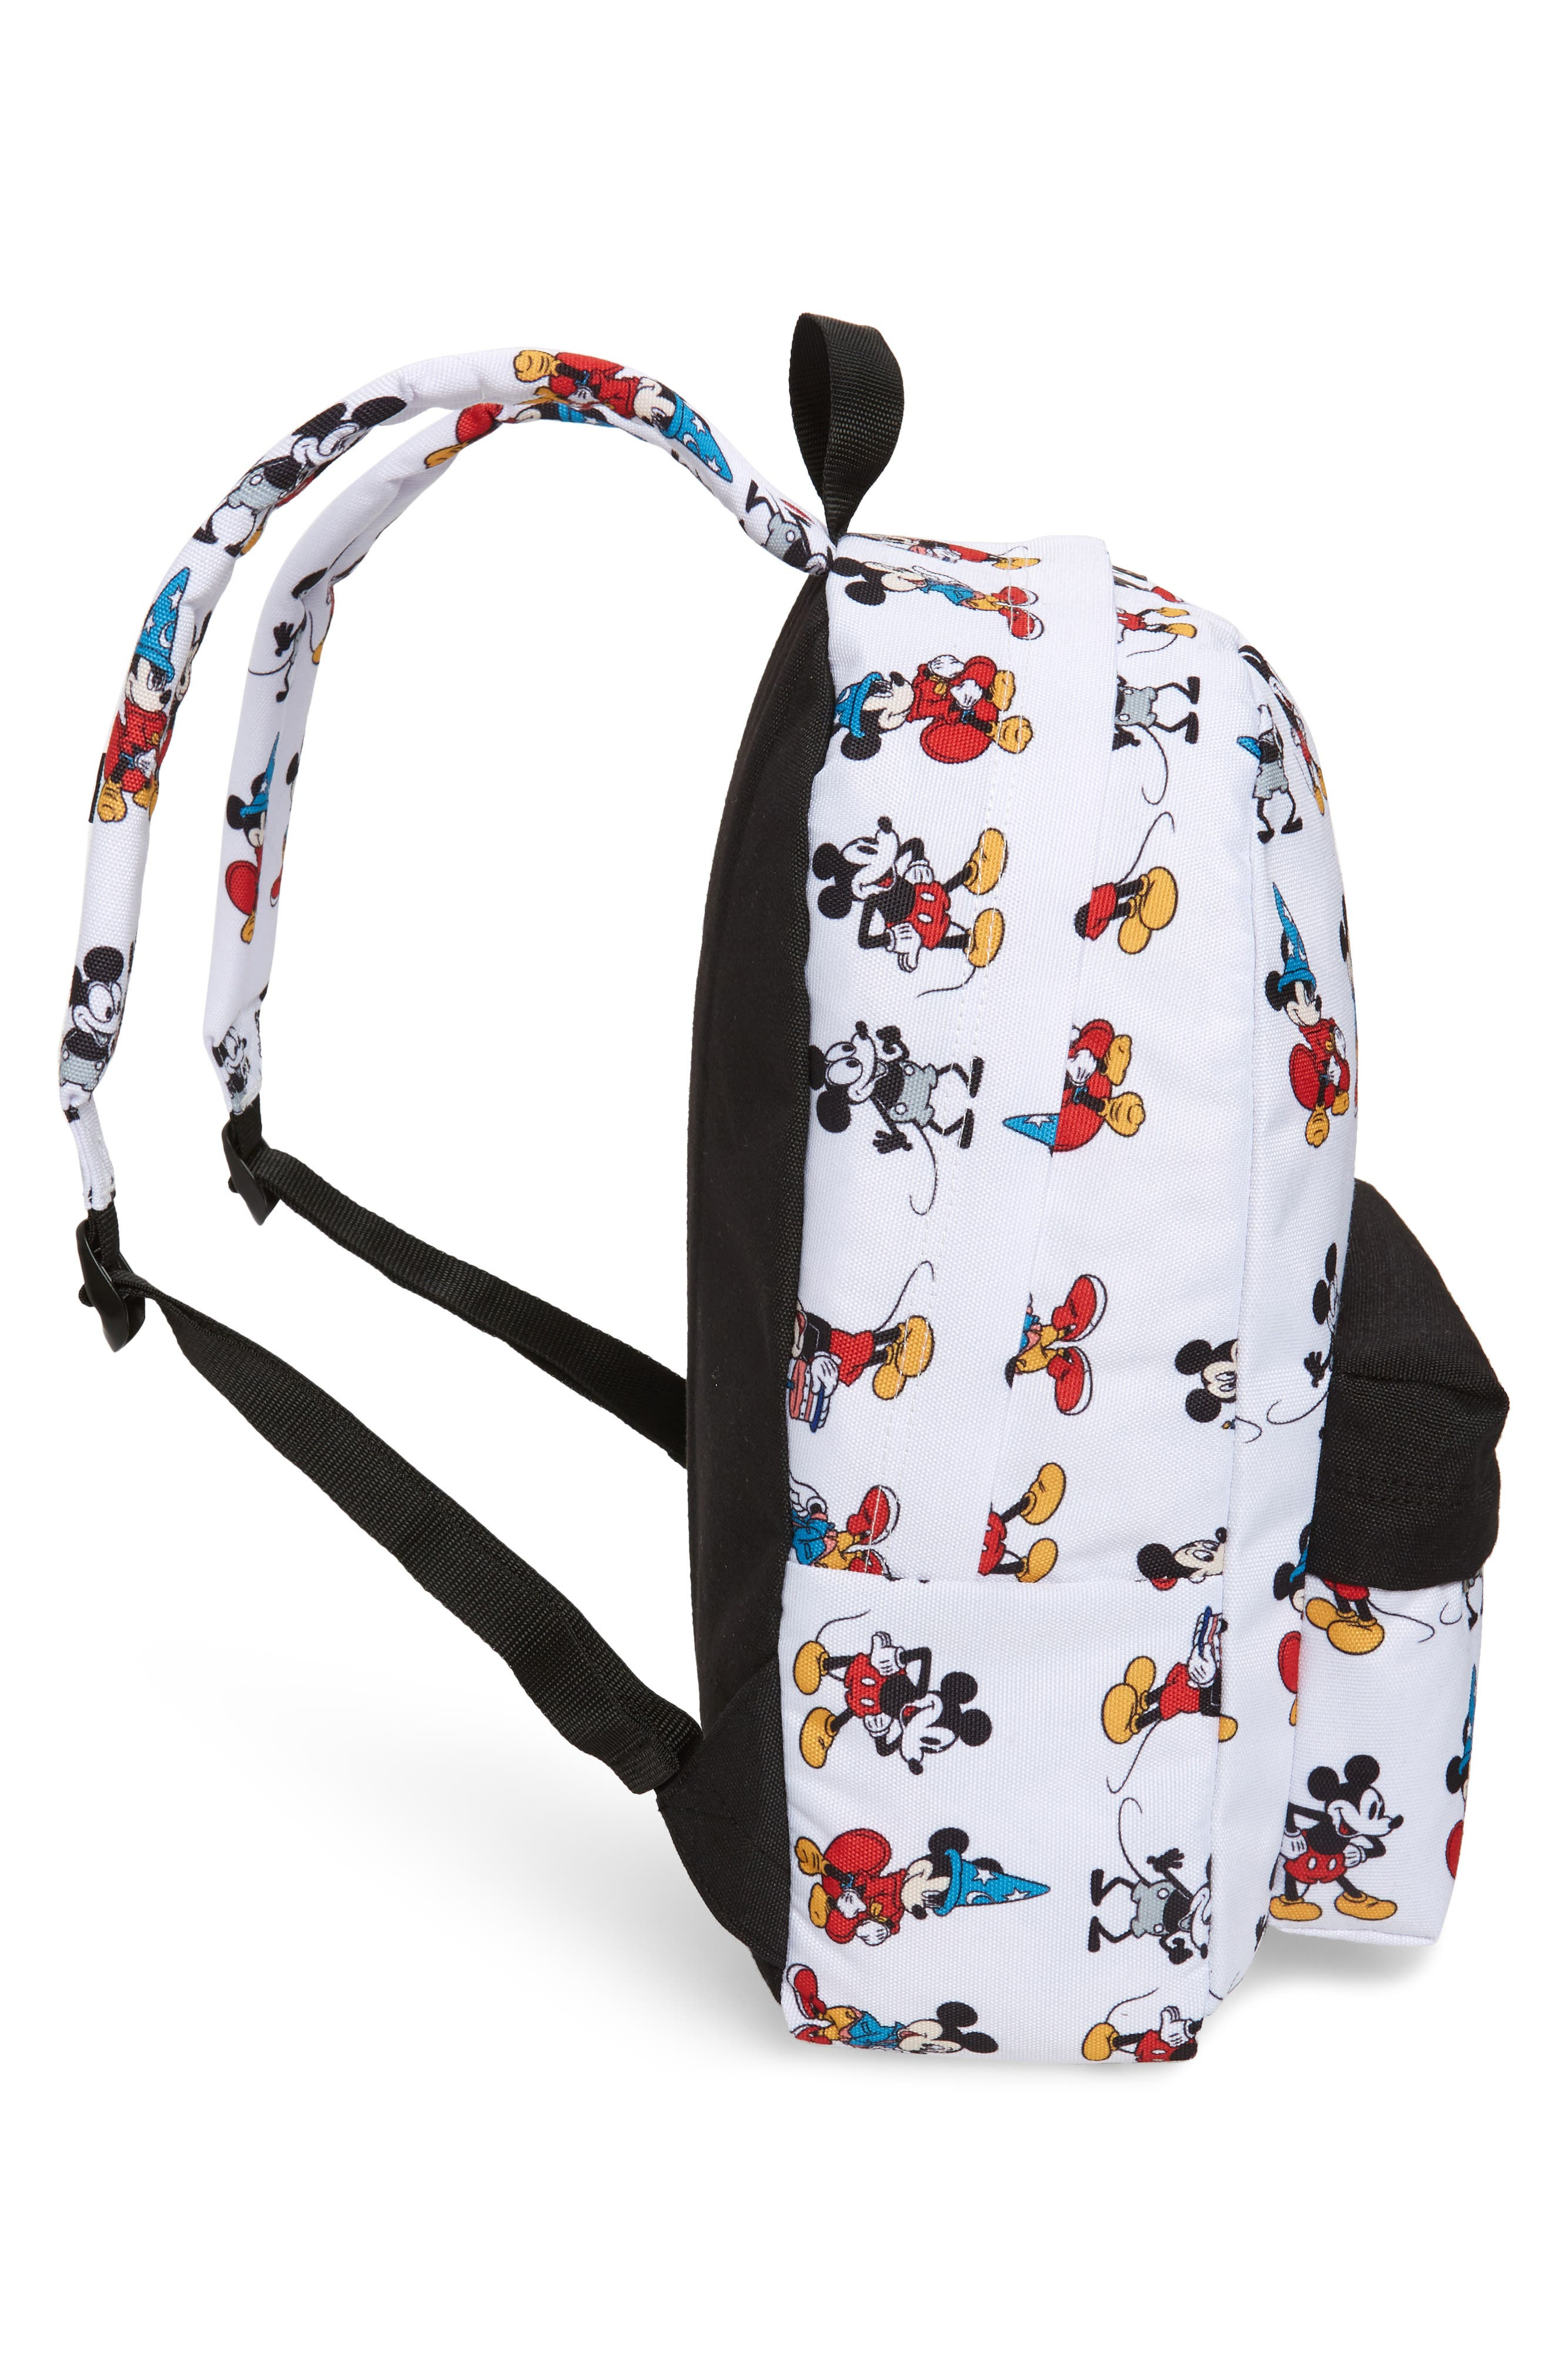 x Disney Mickey's 90th Anniversary - Mickey Through the Ages Backpack,                             Alternate thumbnail 5, color,                             WHITE